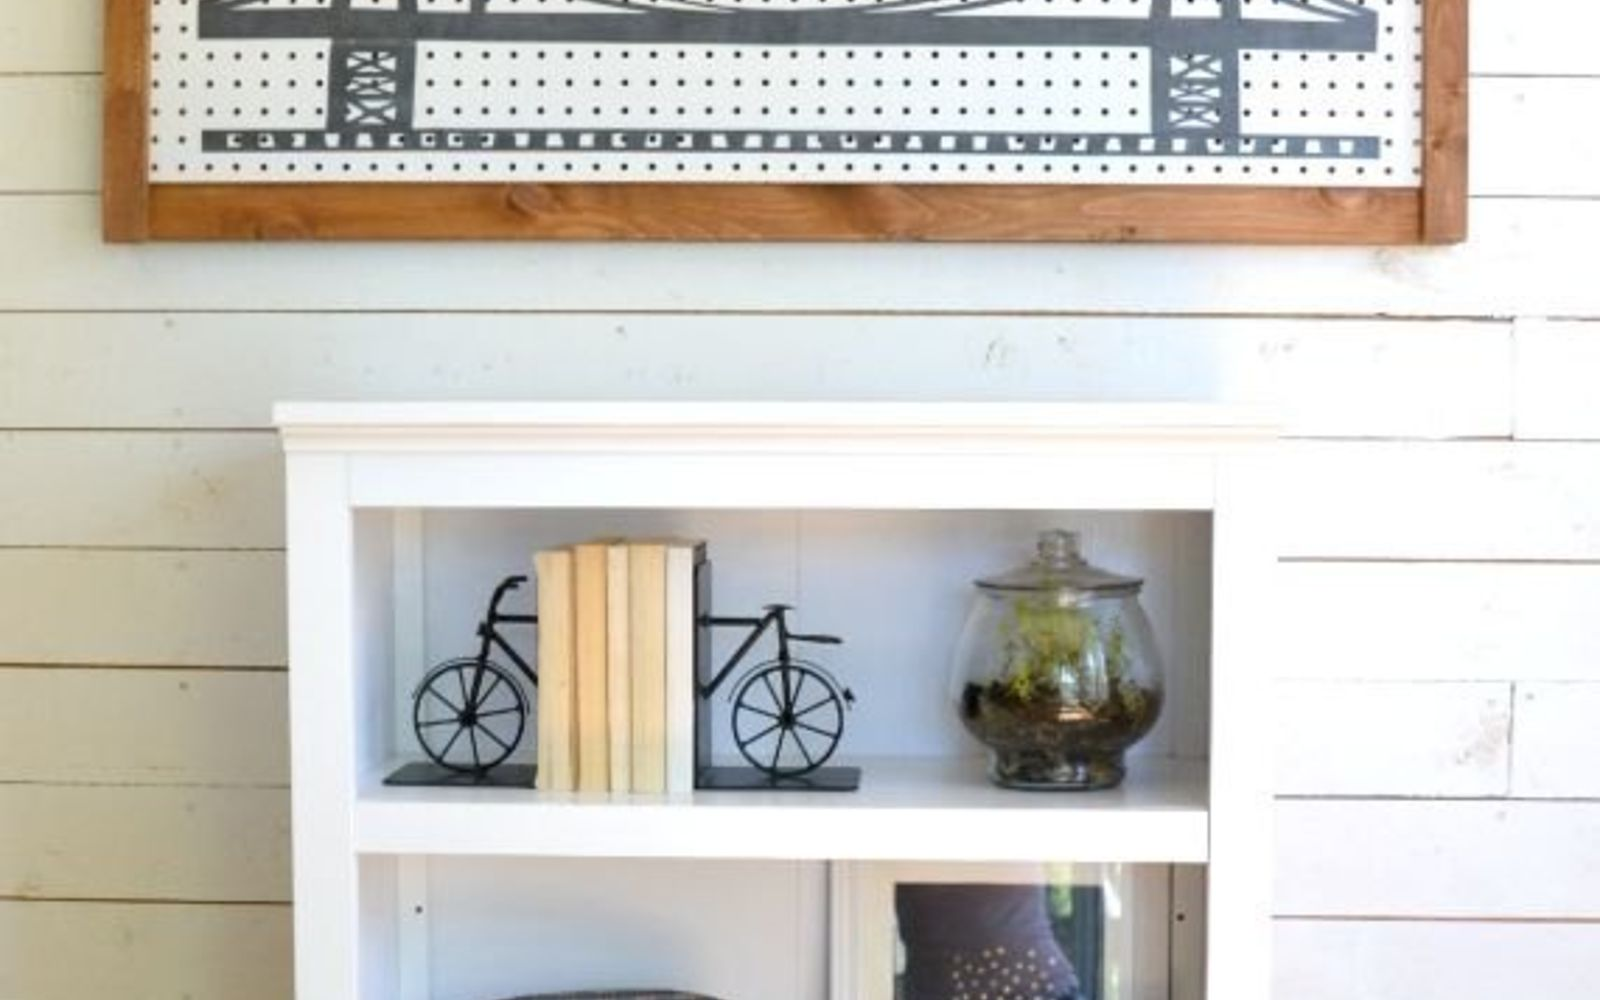 s 15 ways to organize every messy nook with pegboard, organizing, woodworking projects, Make a versatile storage board for odd jobs